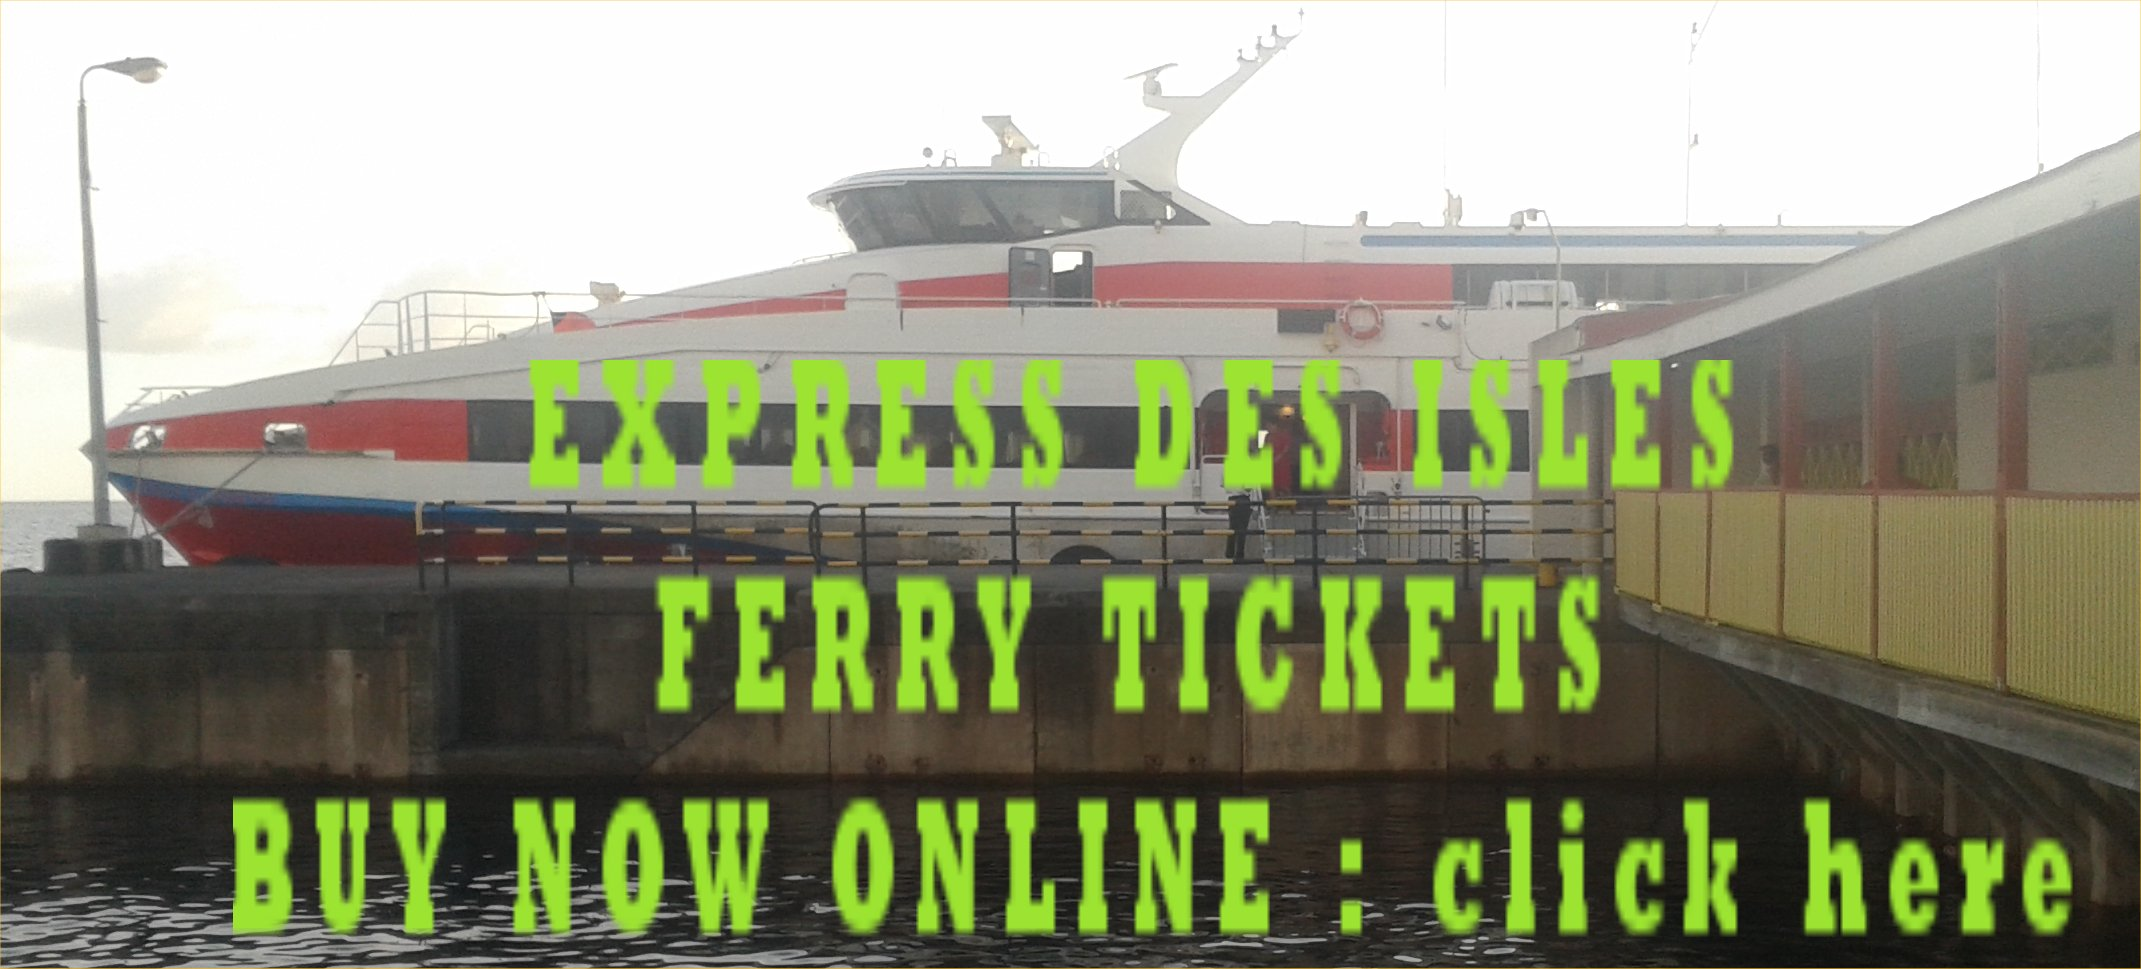 express des iles ferry tickets